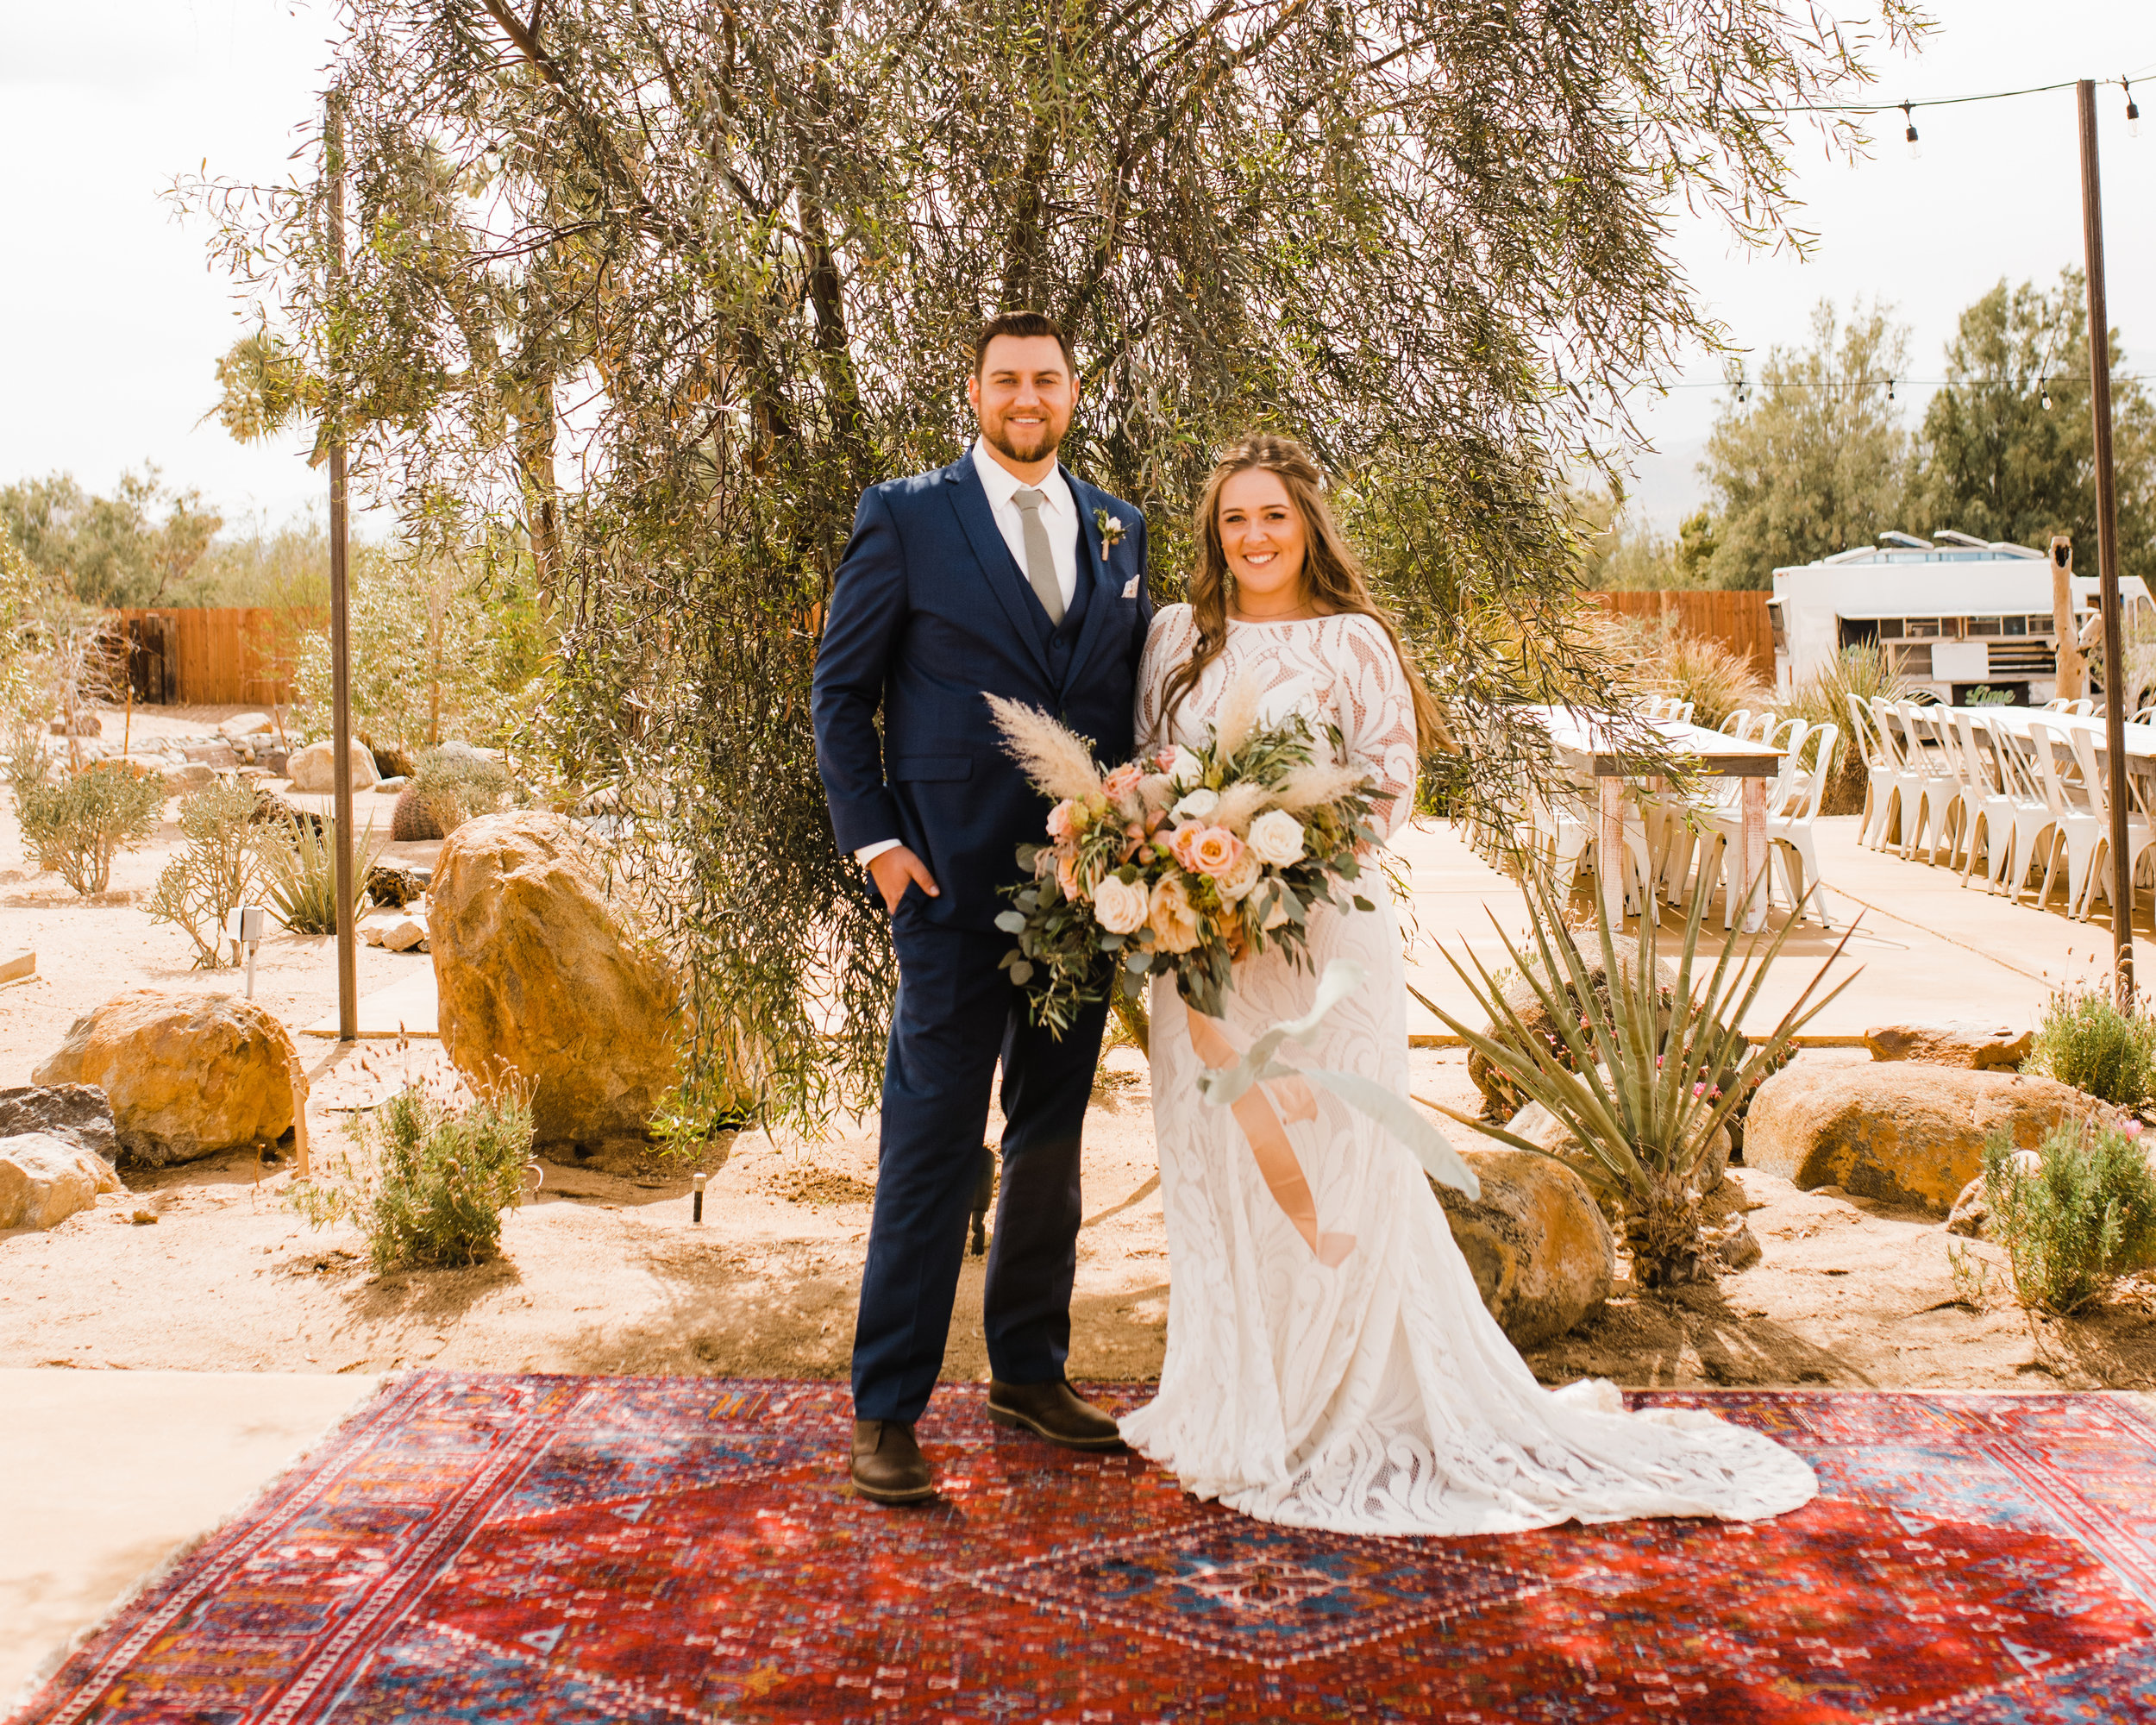 Bride and Groom pose for a portrait before the ceremony at Tumbleweed Sanctuary in Joshua Tree, California with desert-inspired boho florals